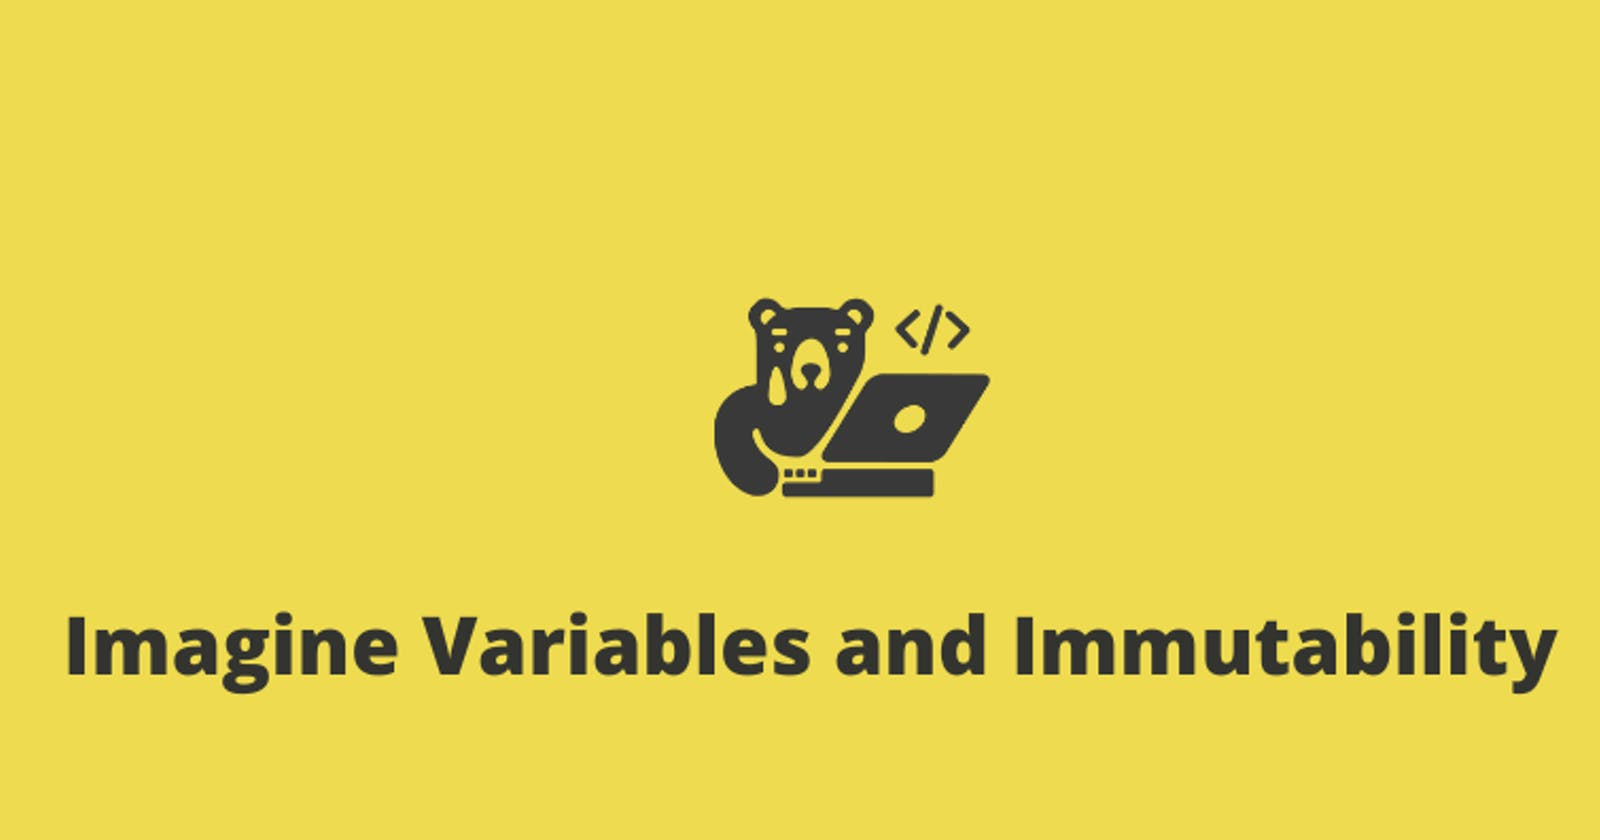 Imagine Variables and Immutability